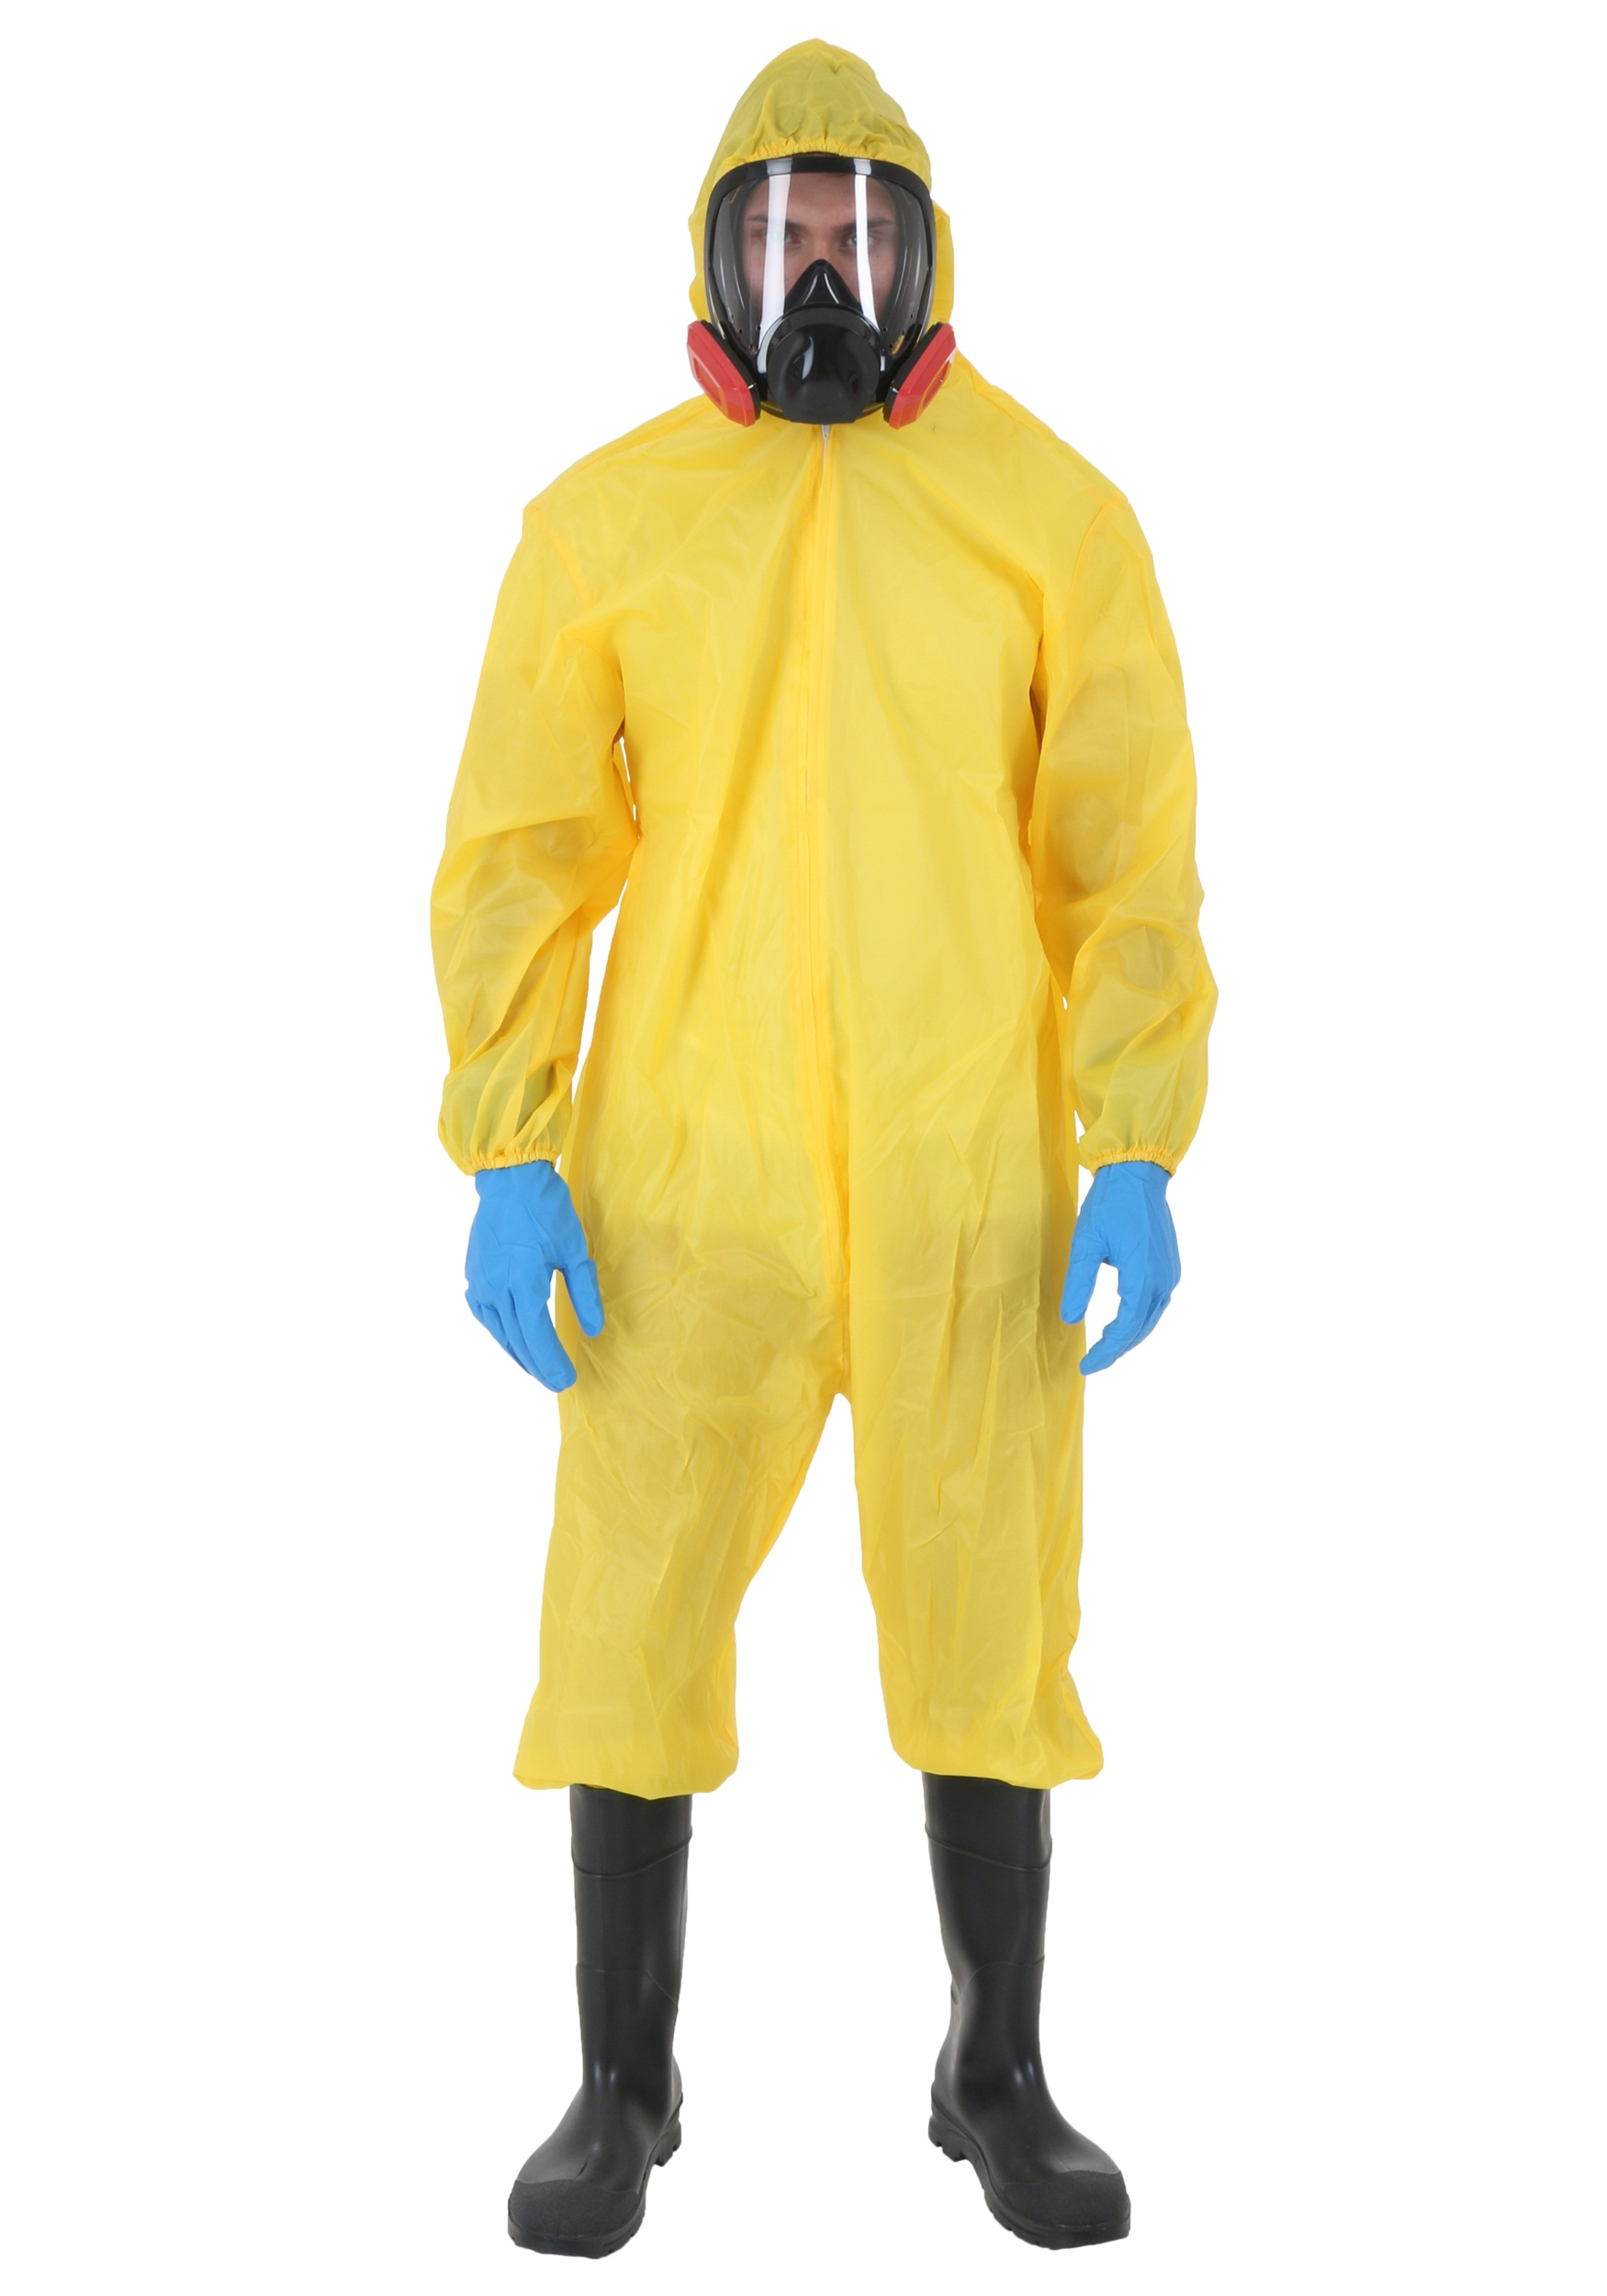 female walter white costume - photo #25